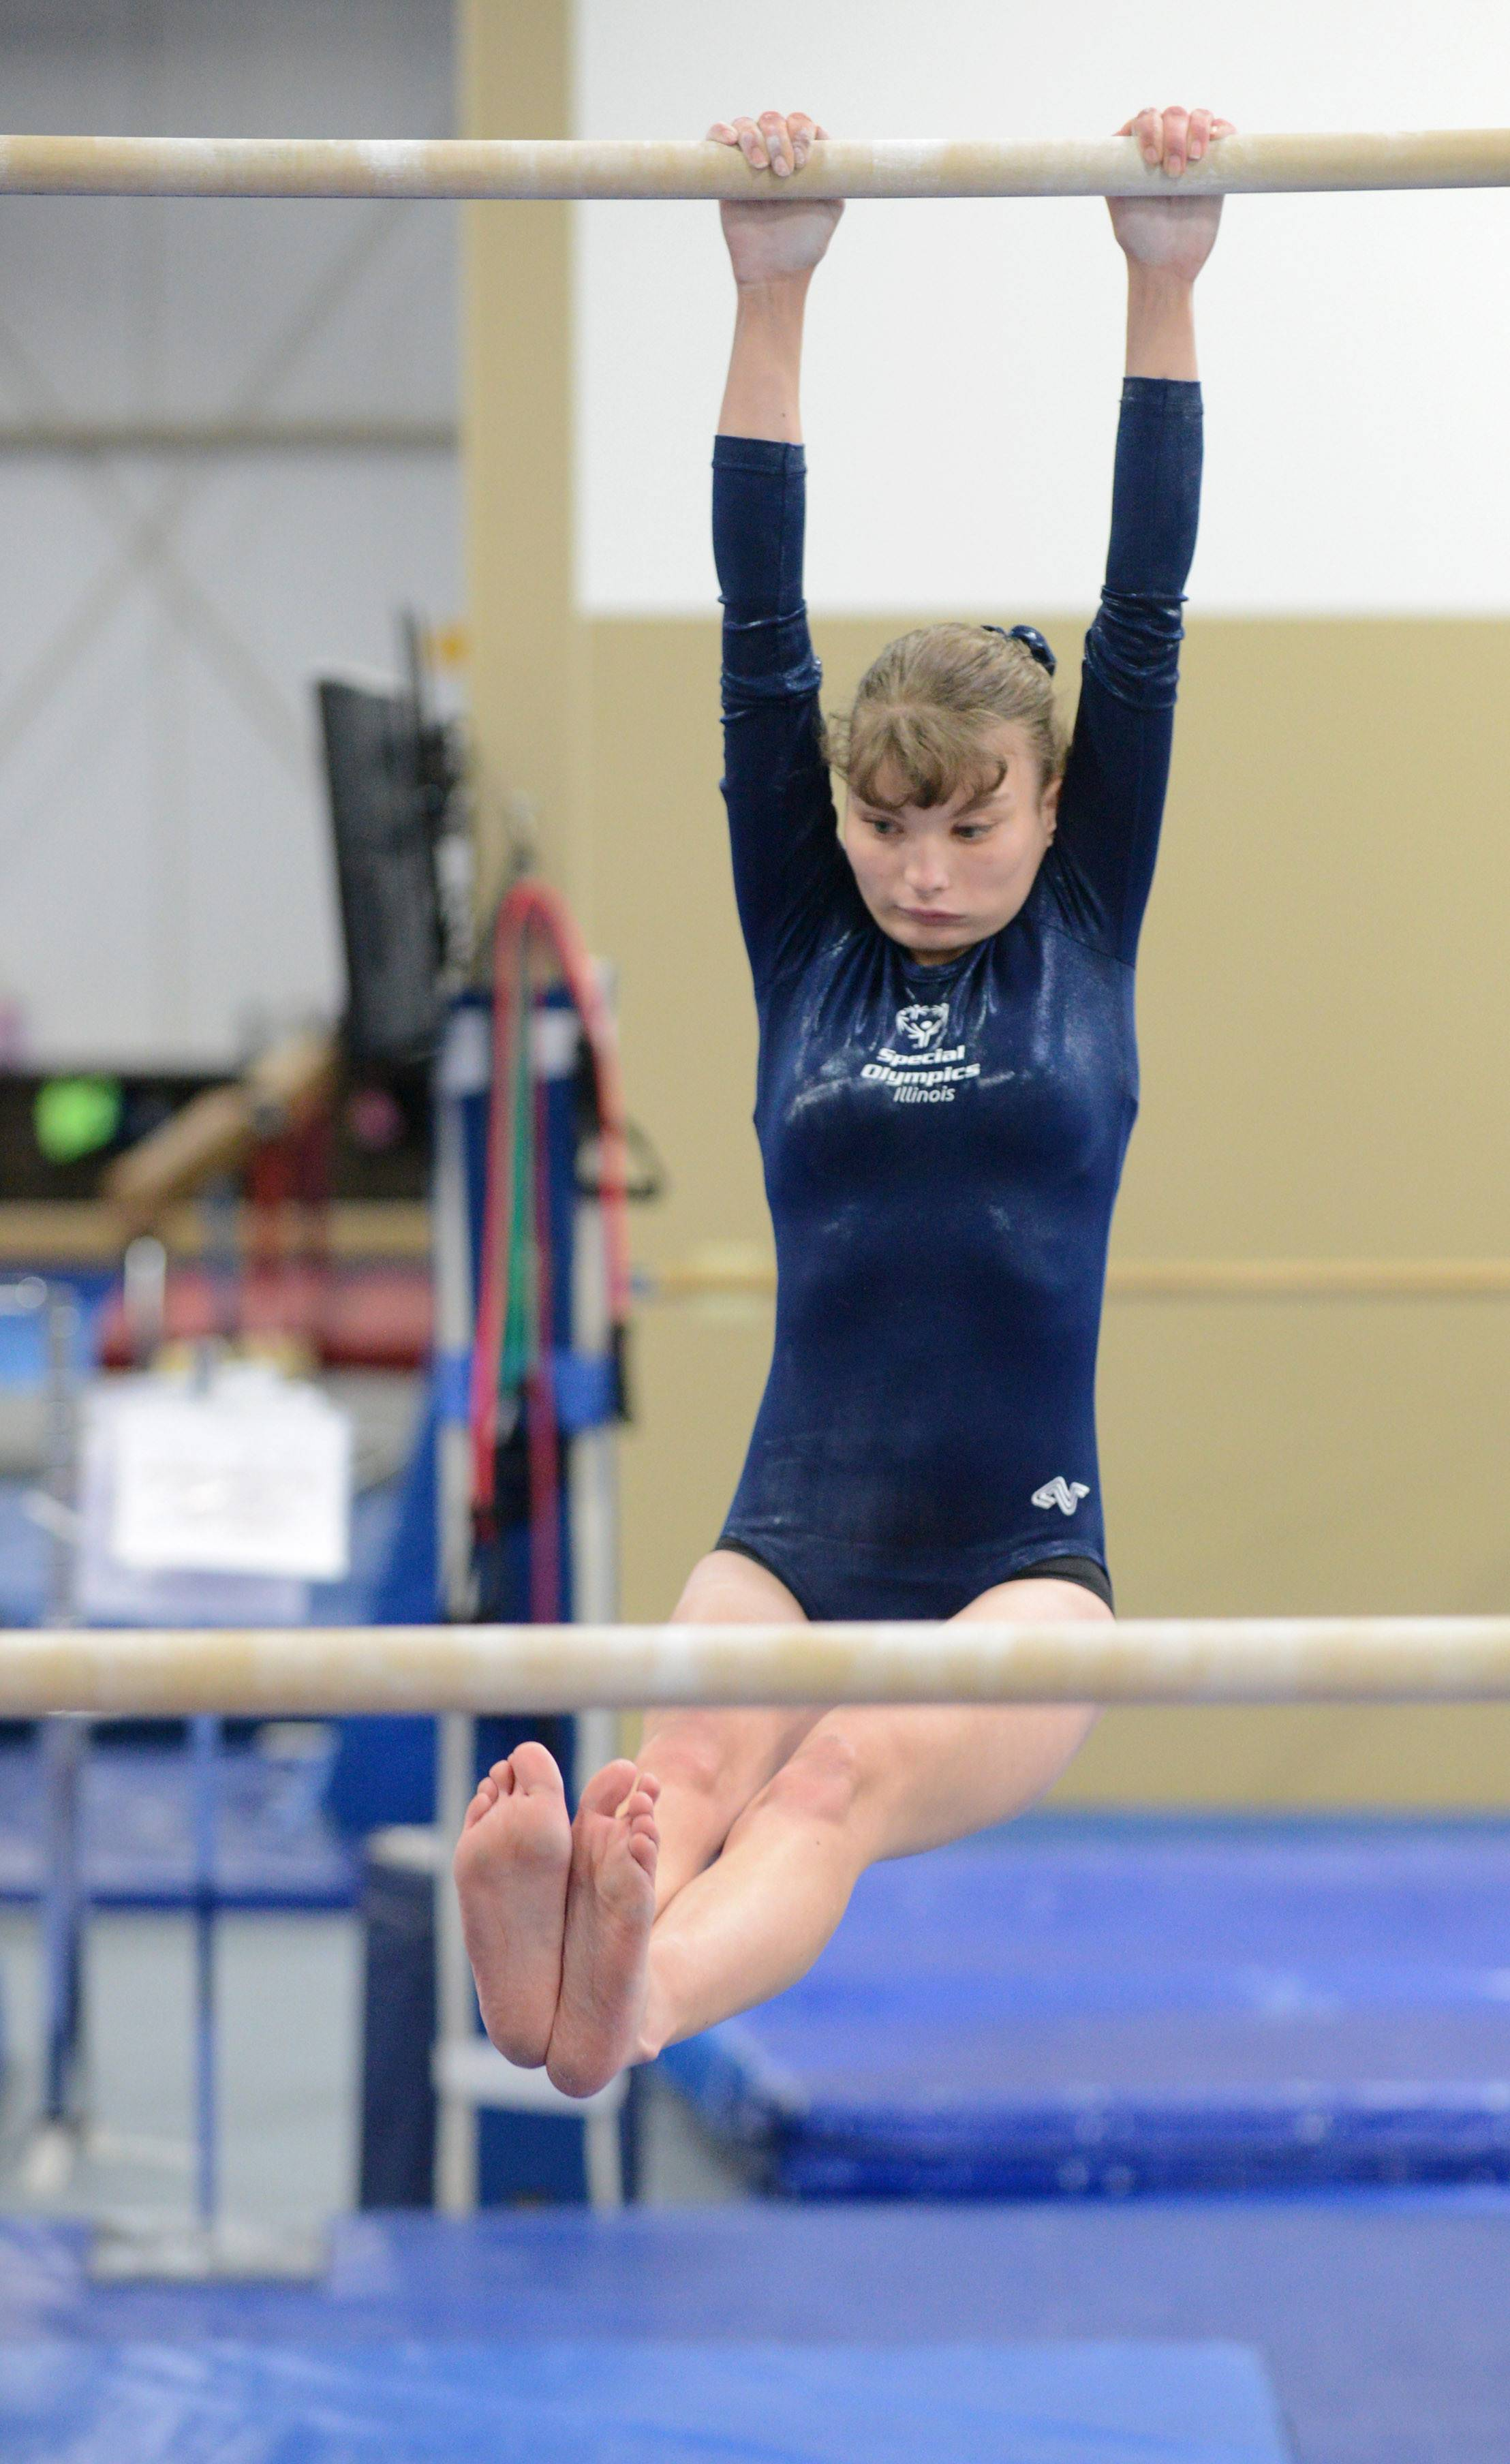 Special Olympics gymnast Janna Blowers, 19, of Campton Hills practices her routine on the uneven bars at Excel Gymnastics in Geneva. She will be competing in the 2014 USA Games in New Jersey next week. A nine-time state finalist, it'll be her first appearance in the national games.